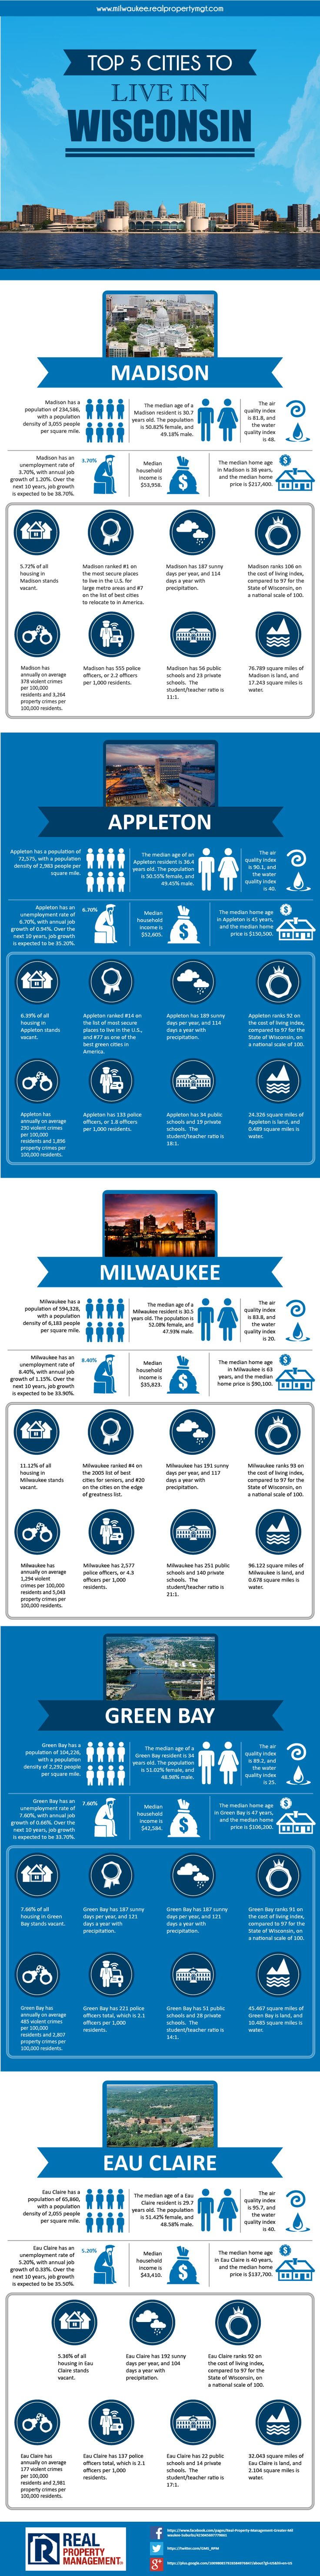 Milwaukee, Madison, Appleton, Green Bay, Eau Claire are top 5 cities to live in Wisconsin. Here is more information about population, schools, business, employment and real estate of each city.